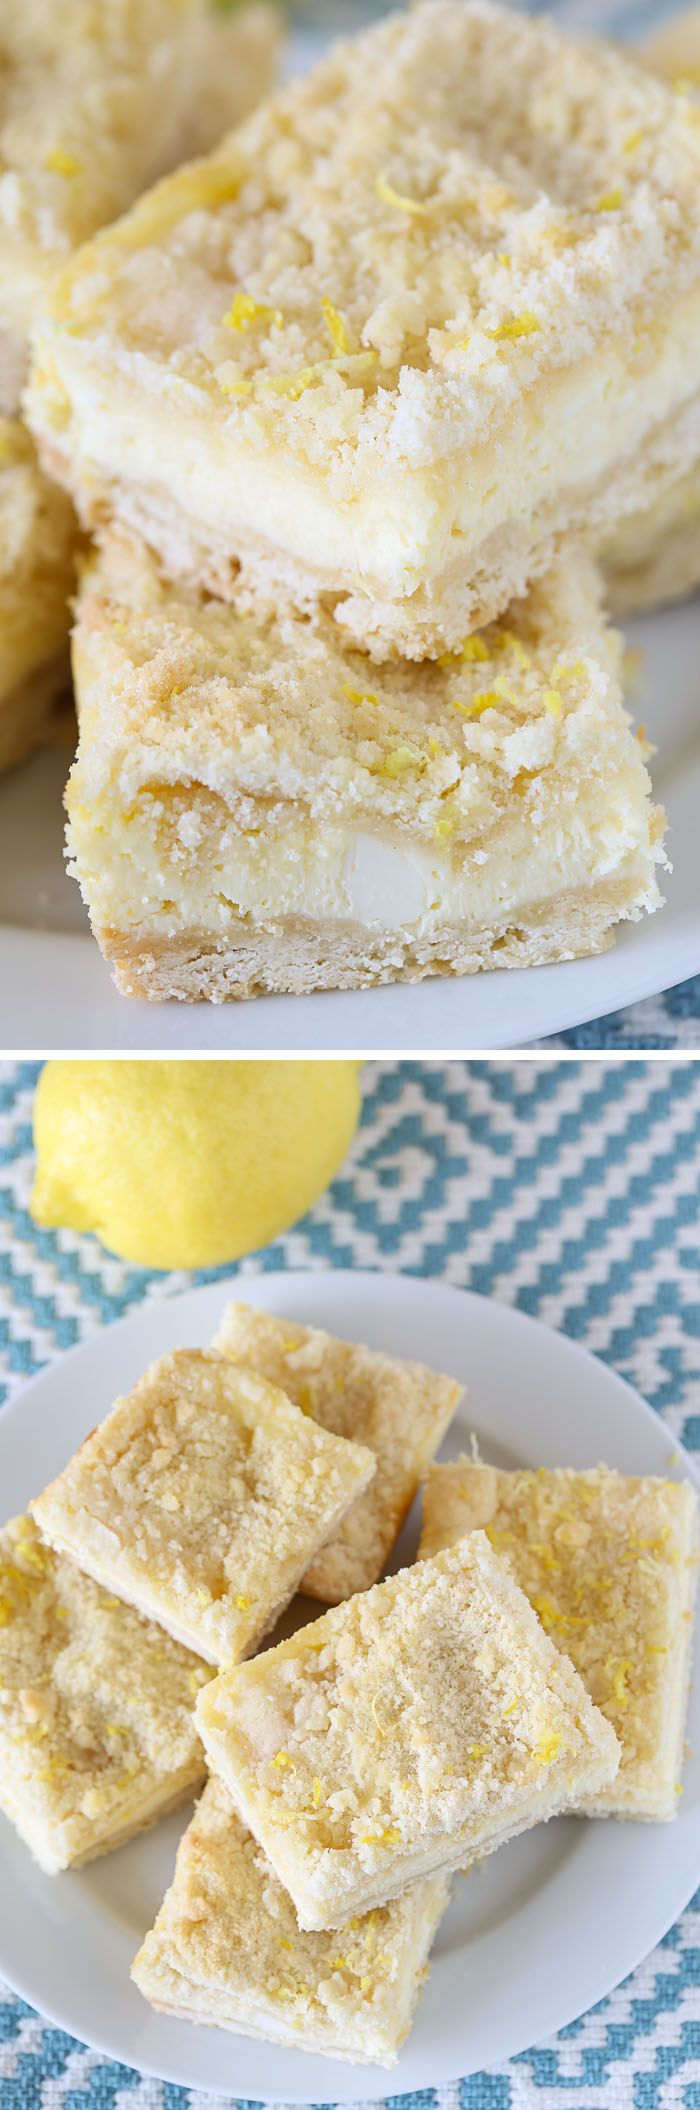 Lemon Shortbread Crumble Bars | Willow Bird Baking | This is the ultimate lemon dessert recipe! These bars are the perfect balance of buttery, sweet, tangy, creamy, crunchy, and EASY.